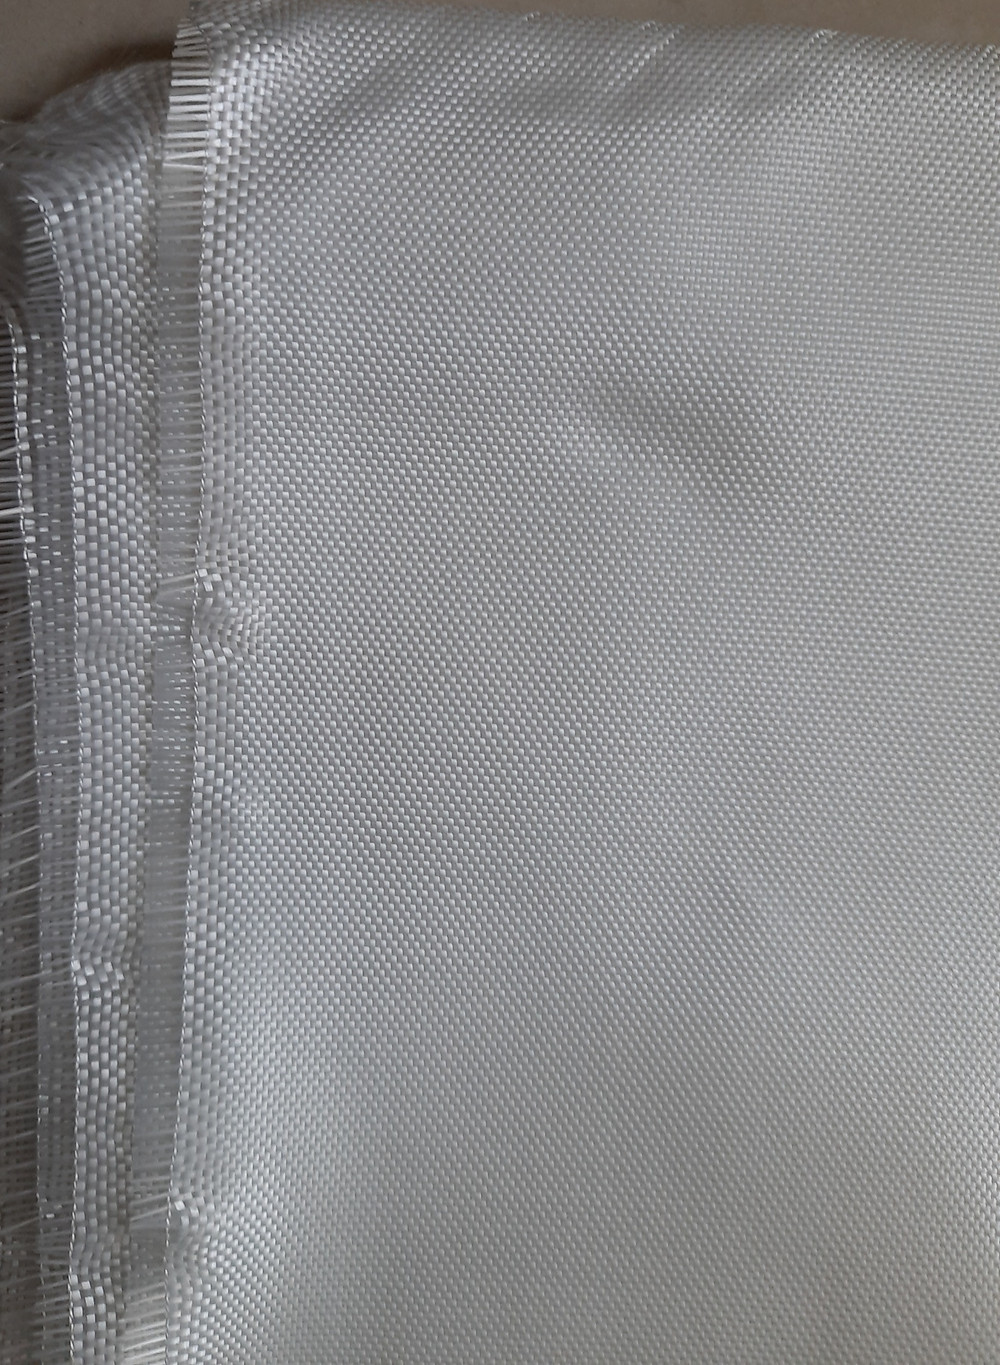 7 mil Fiberglass Fabric of 200 gsm in 7628 Style